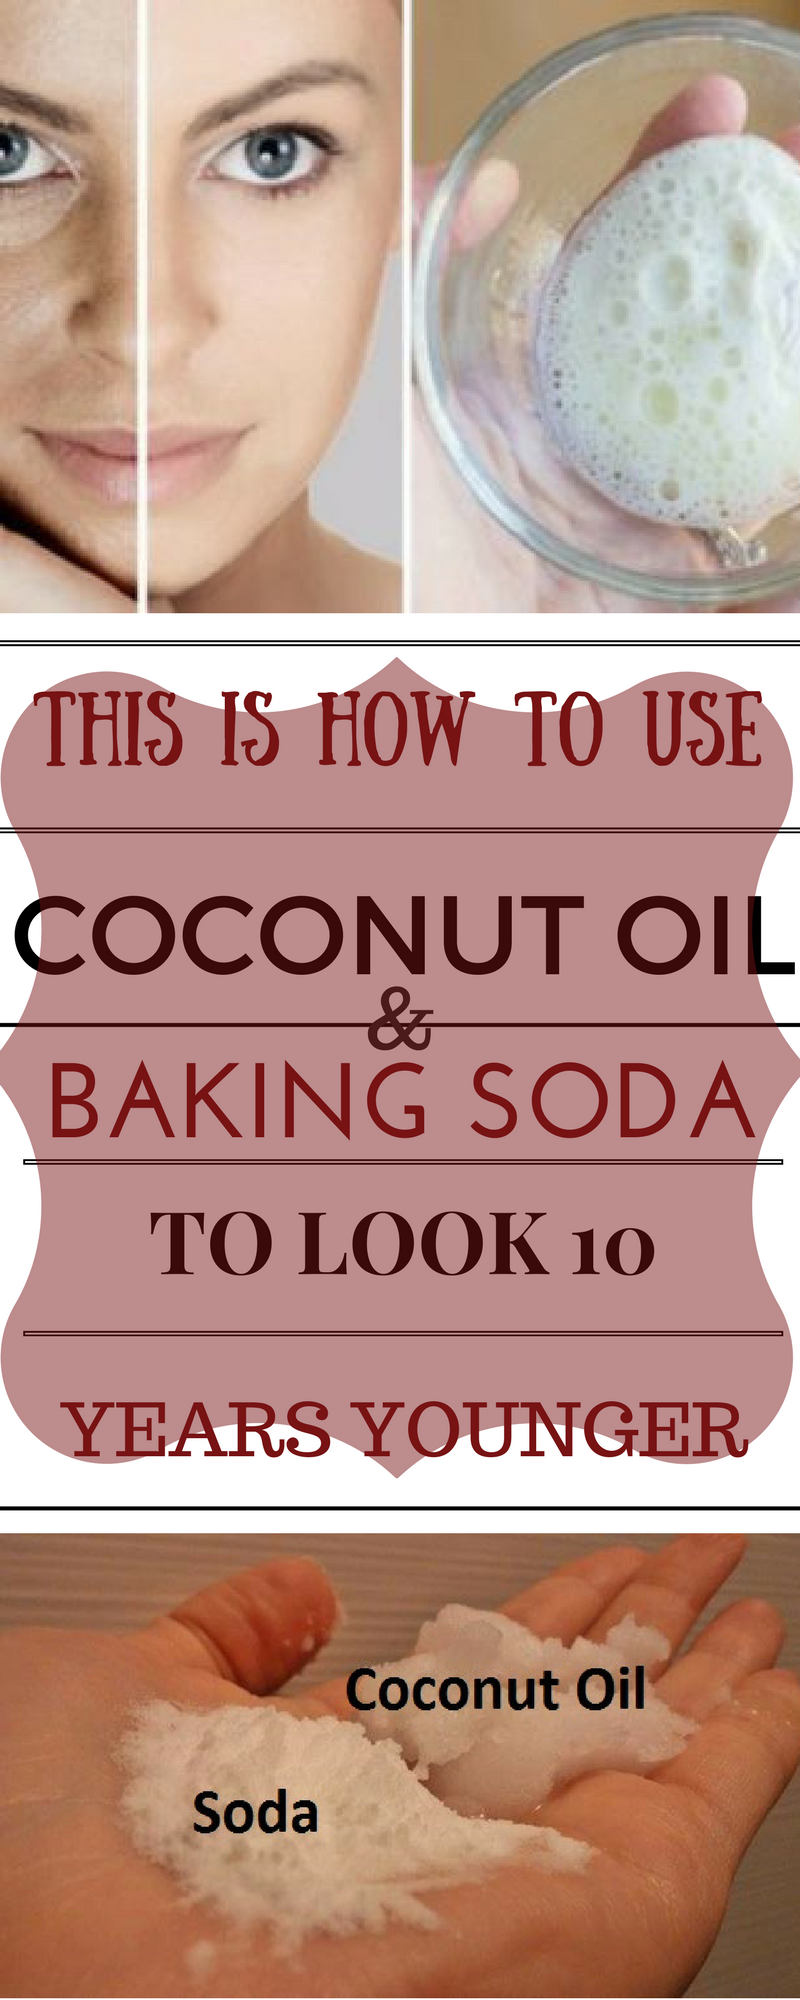 Pin By Mandy Wallace On Hair  Make Up Pinterest Baking Powder - How to use coconut oil on hair